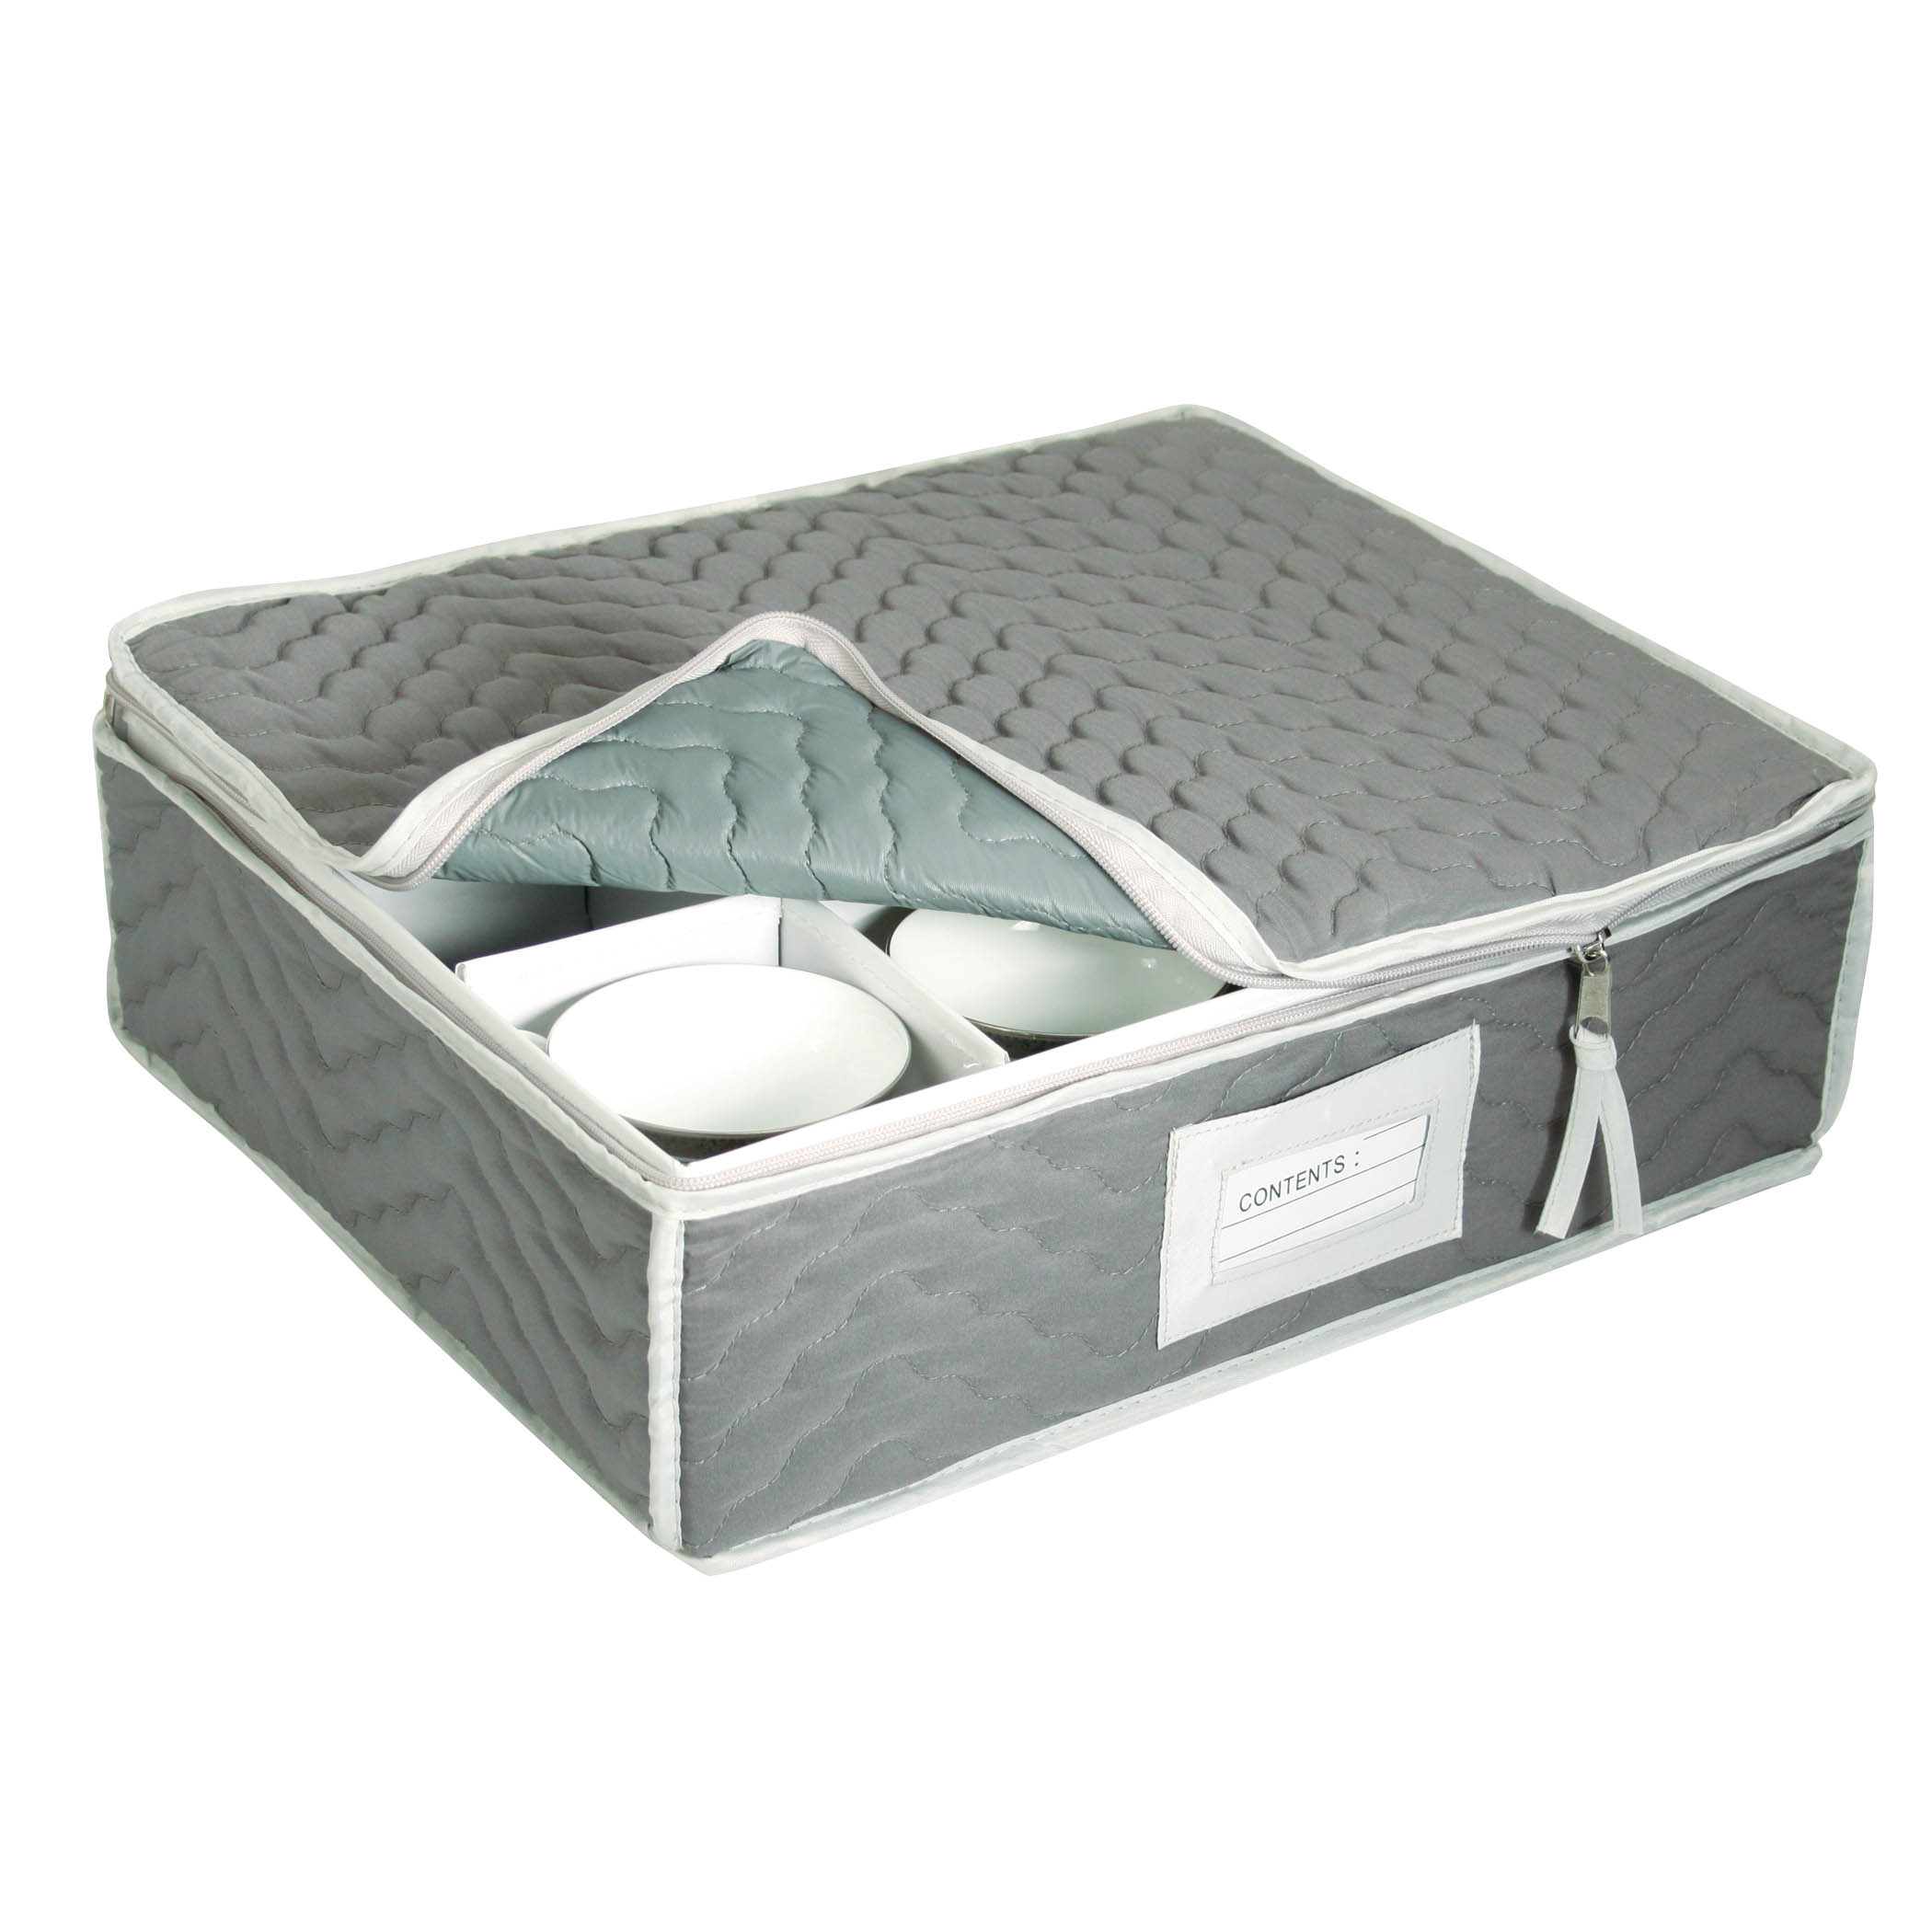 China Cup Storage Chest - Deluxe Quilted Microfiber (13H x 15.5W x 5D) (Grey, 2 PACK)